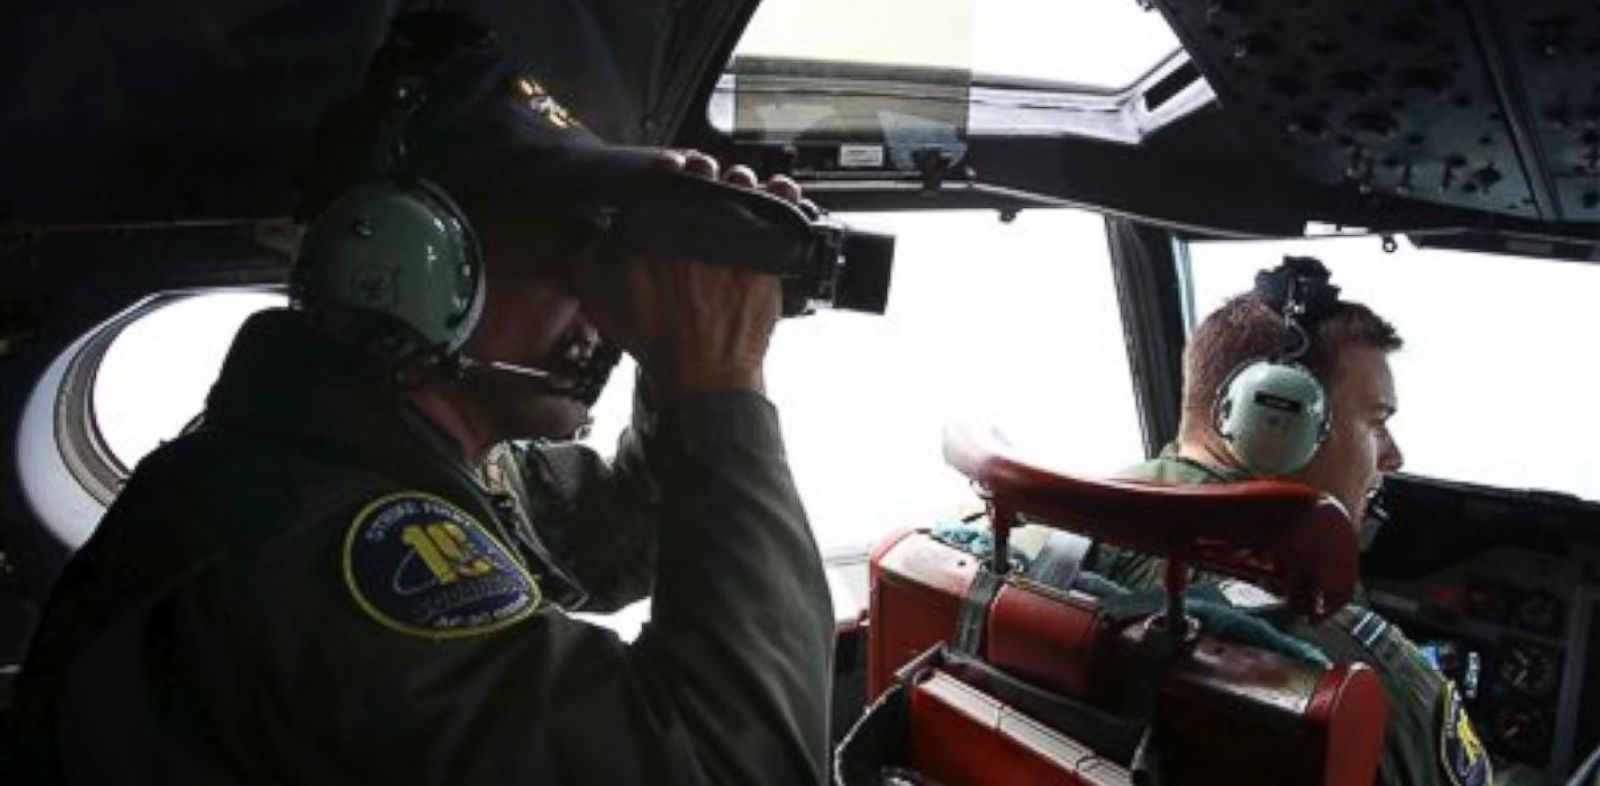 PHOTO: In this Wednesday, March 26, 2014 photo, Flight Engineer Ron Day on board a Royal Australian Air Force AP-3C Orion, searches for the missing Malaysia Airlines Flight 370 in the southern Indian Ocean.